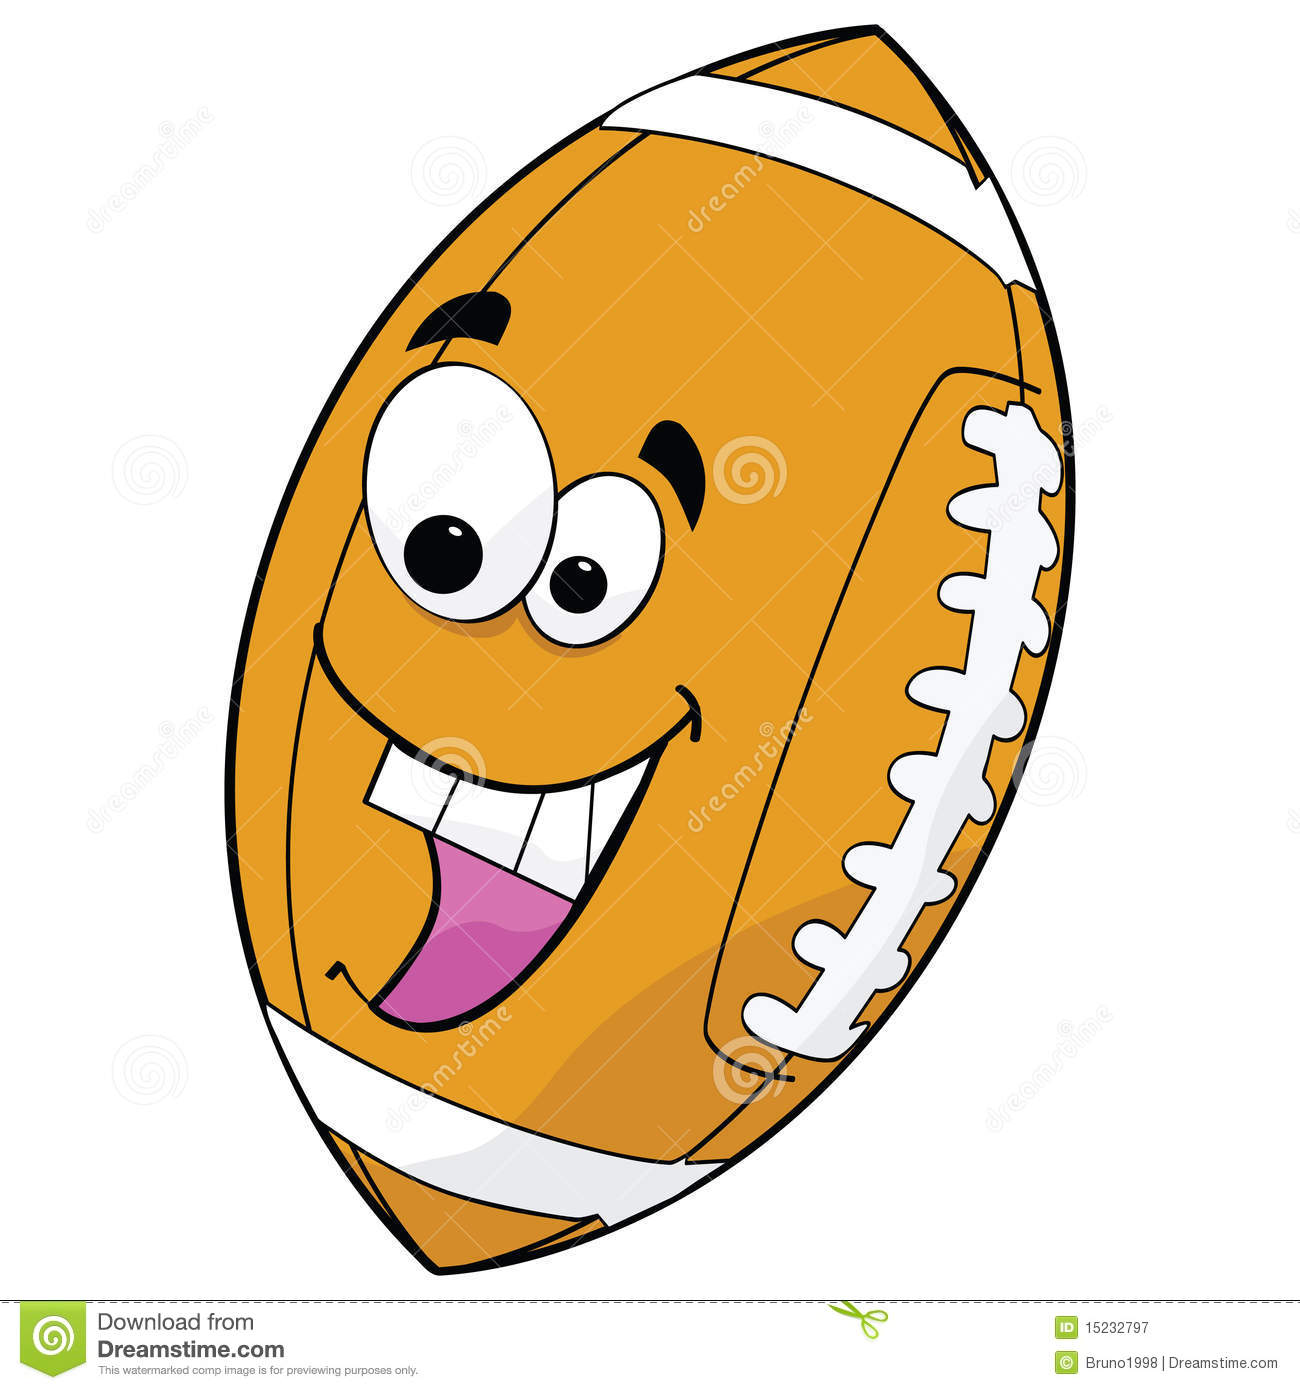 Cartoon Football Royalty Free Stock Photography - Image: 15232797